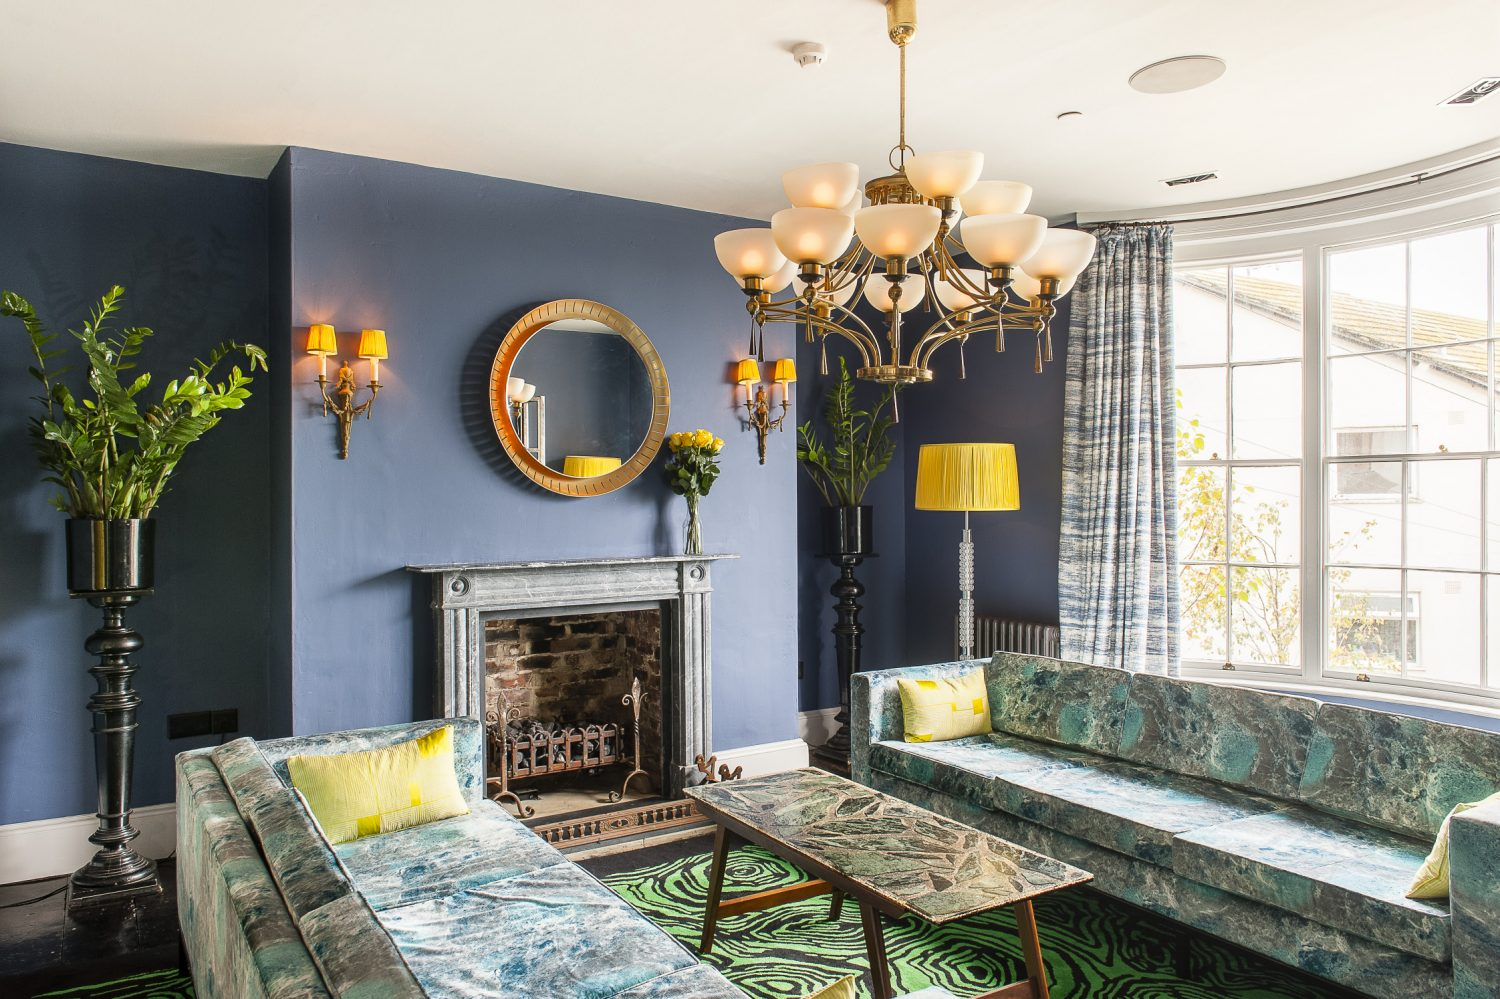 Two custom made marble-print velvet sofas sit below a 1940s brass chandelier in the sitting room